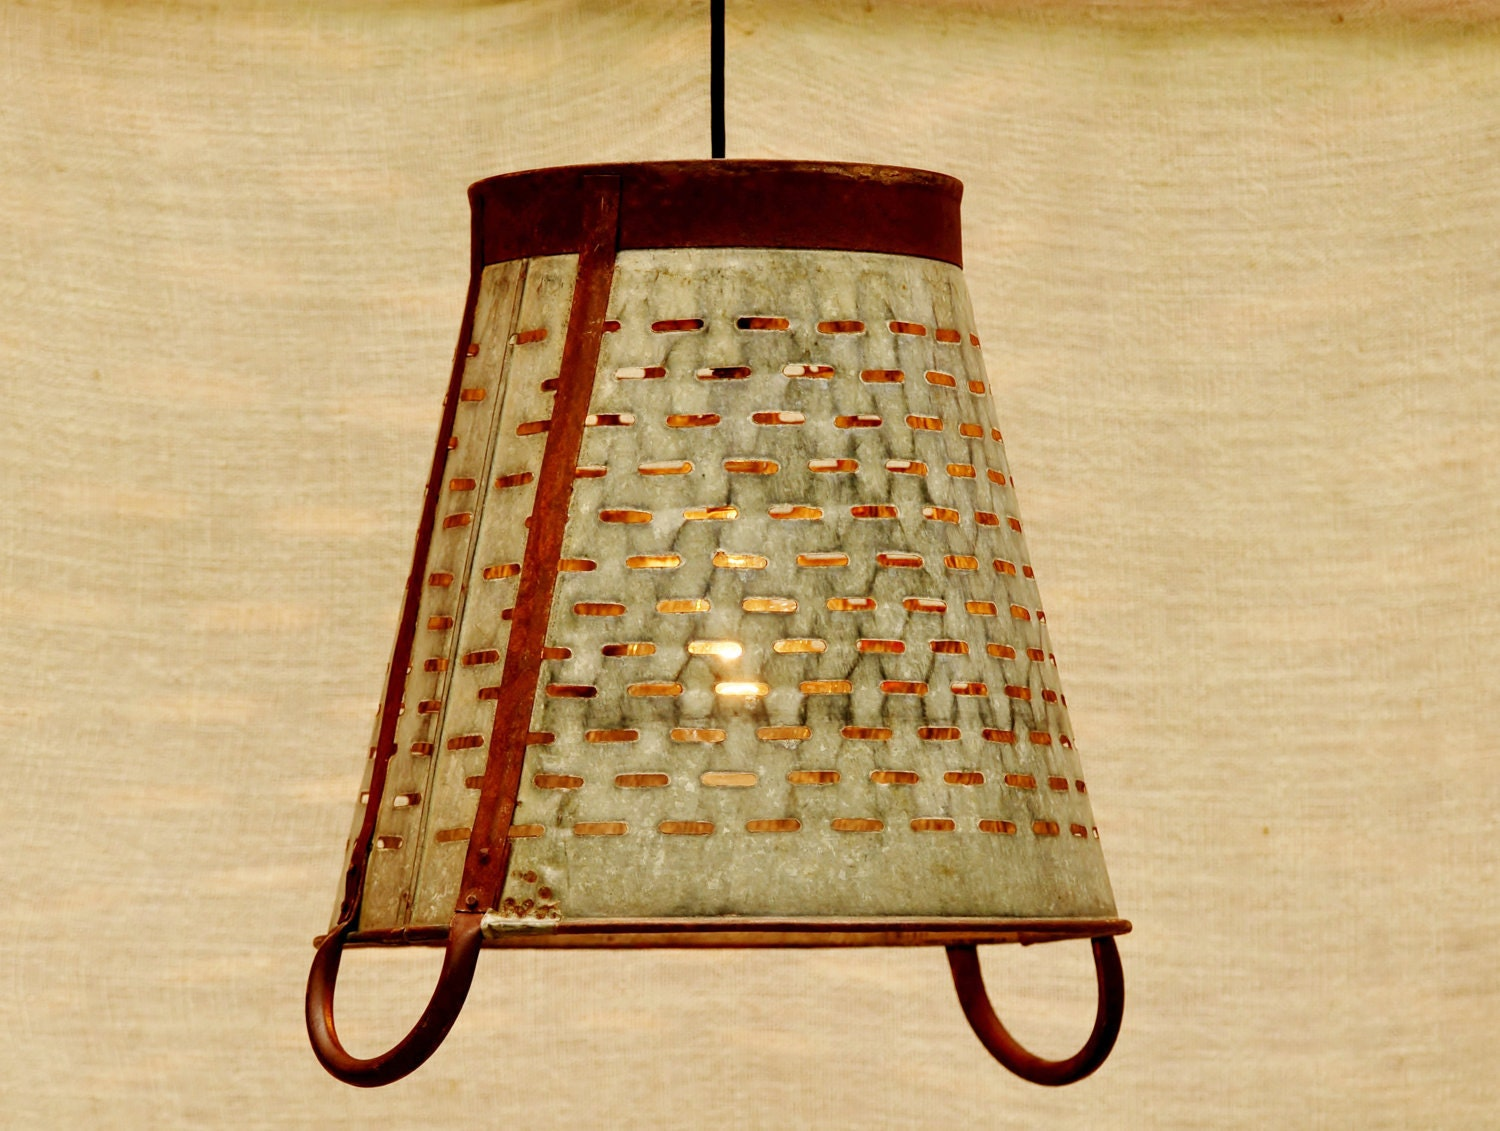 Hanging Industrial Pendant Light - Vintage Metal Olive Basket from Italy - TinkerLighting